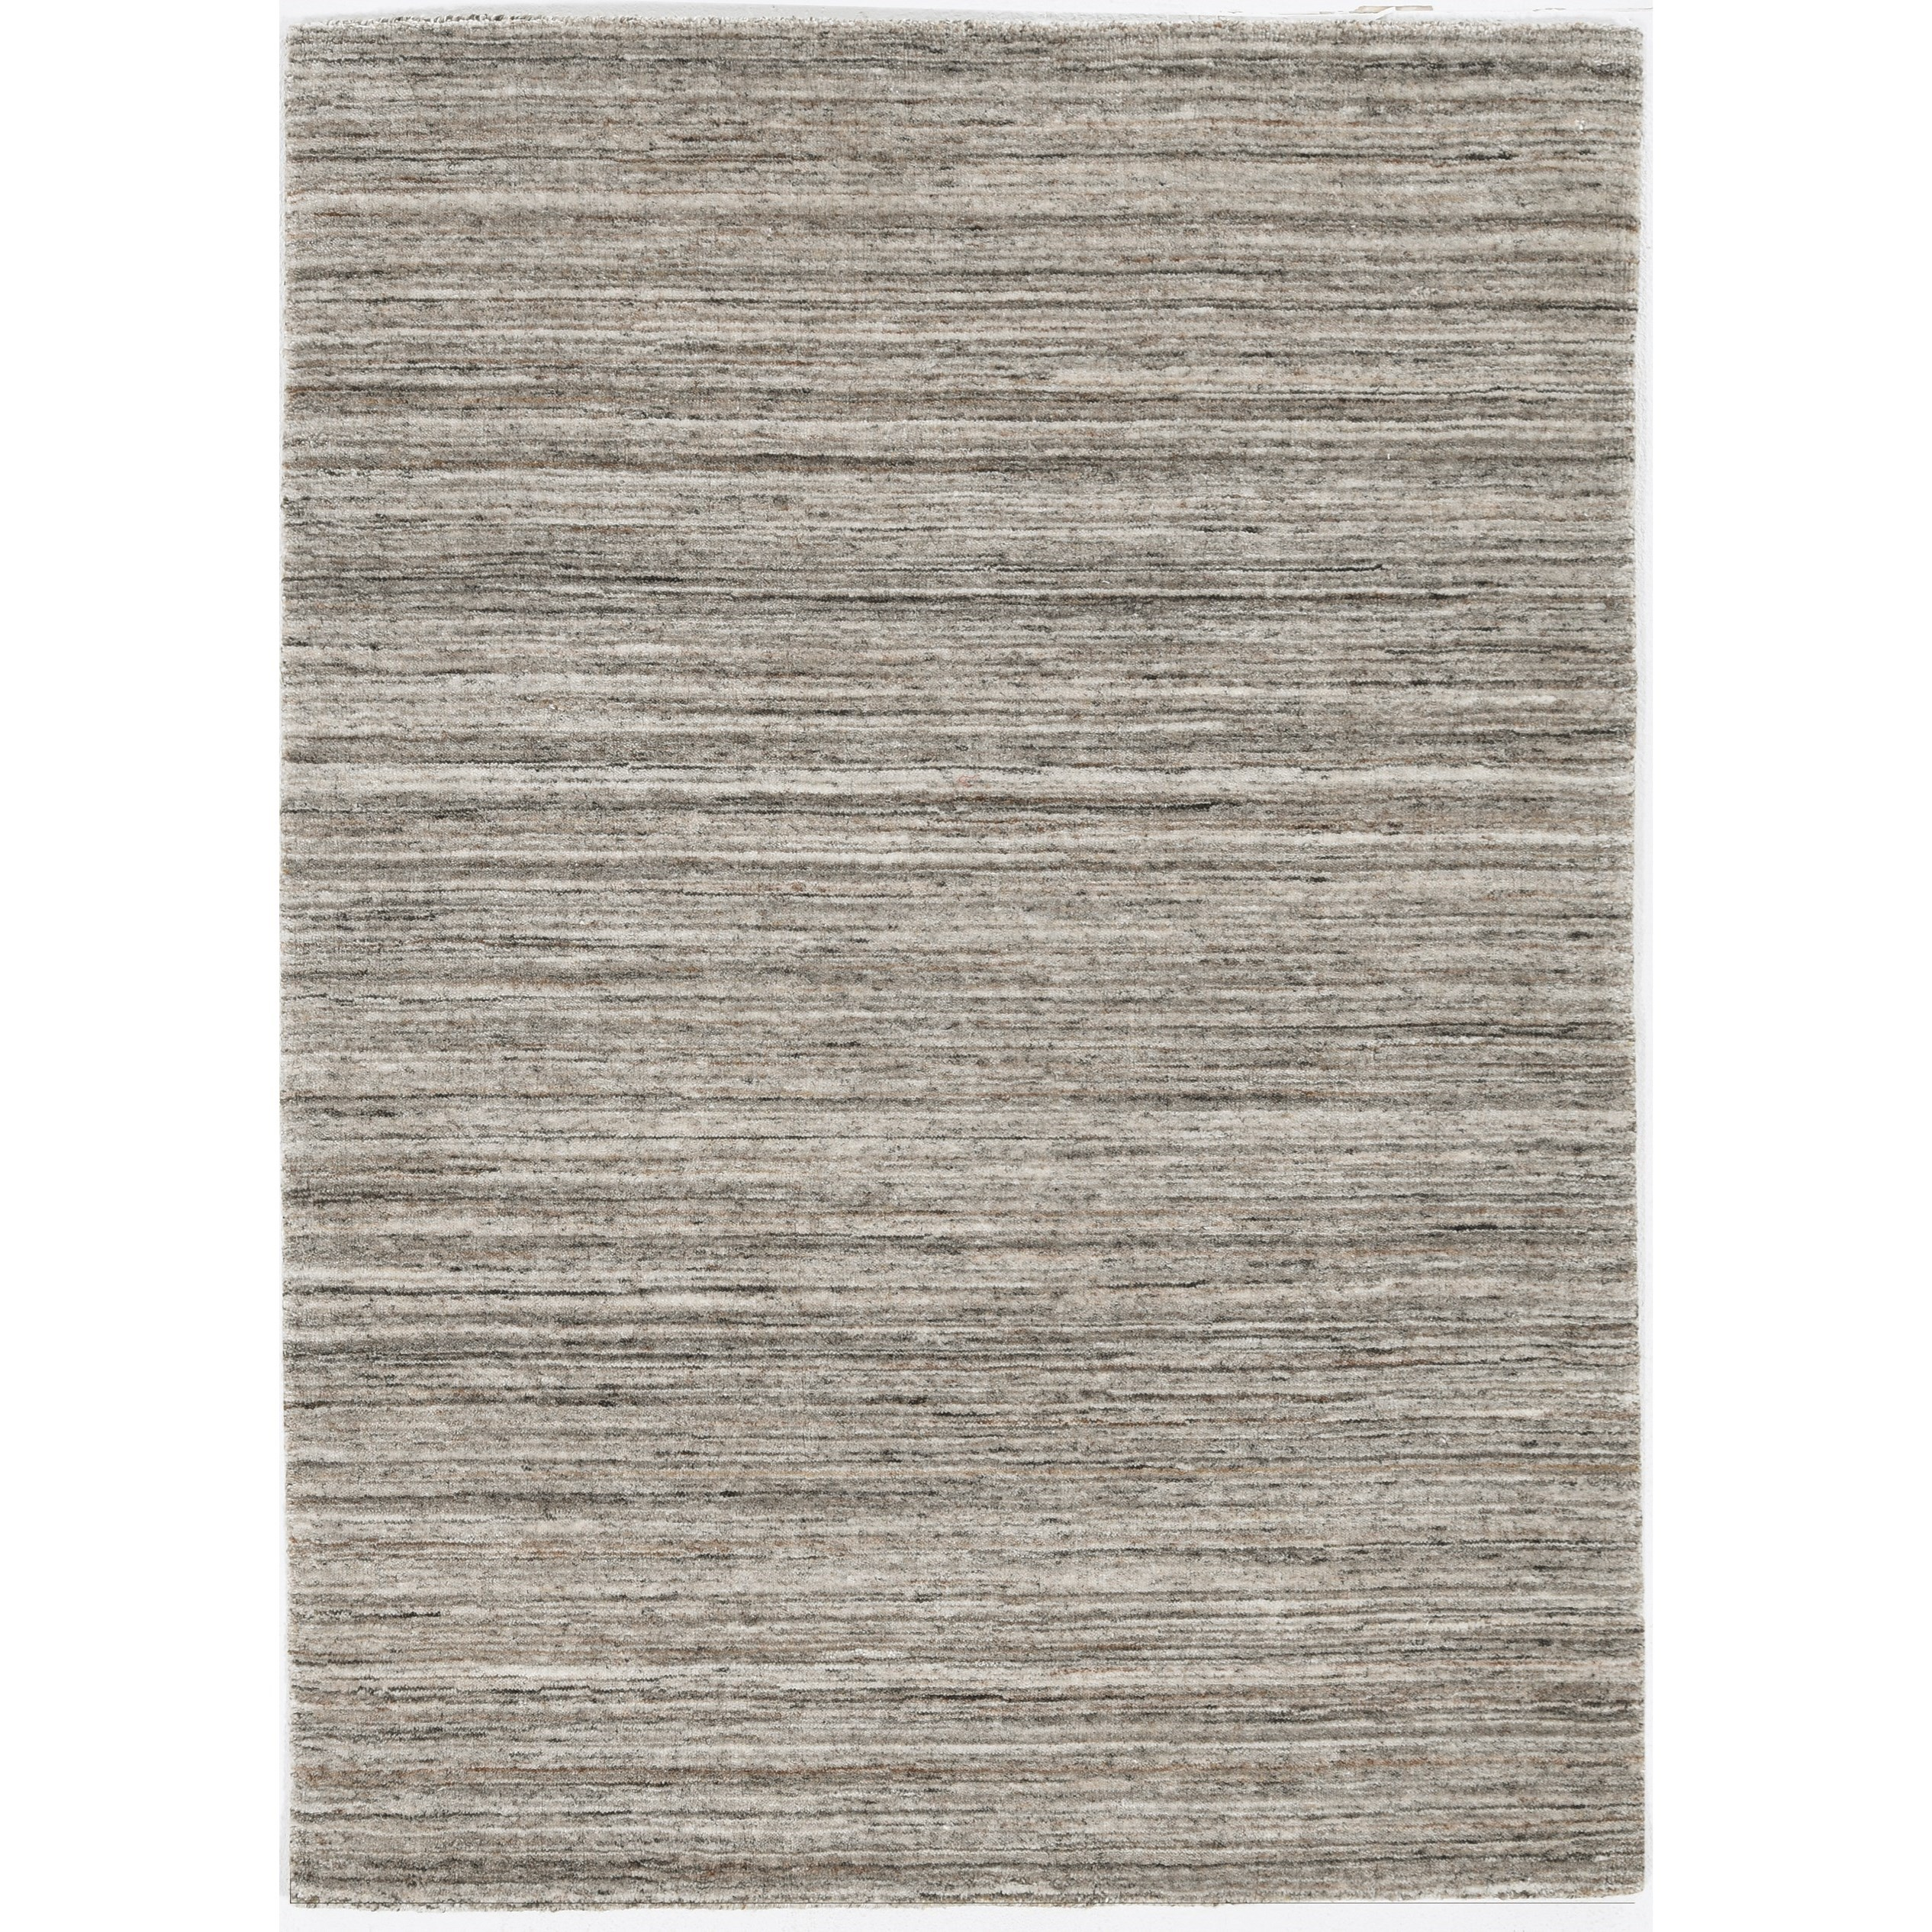 Dune 5' x 8' Sand Villa Rug by Kas at Darvin Furniture